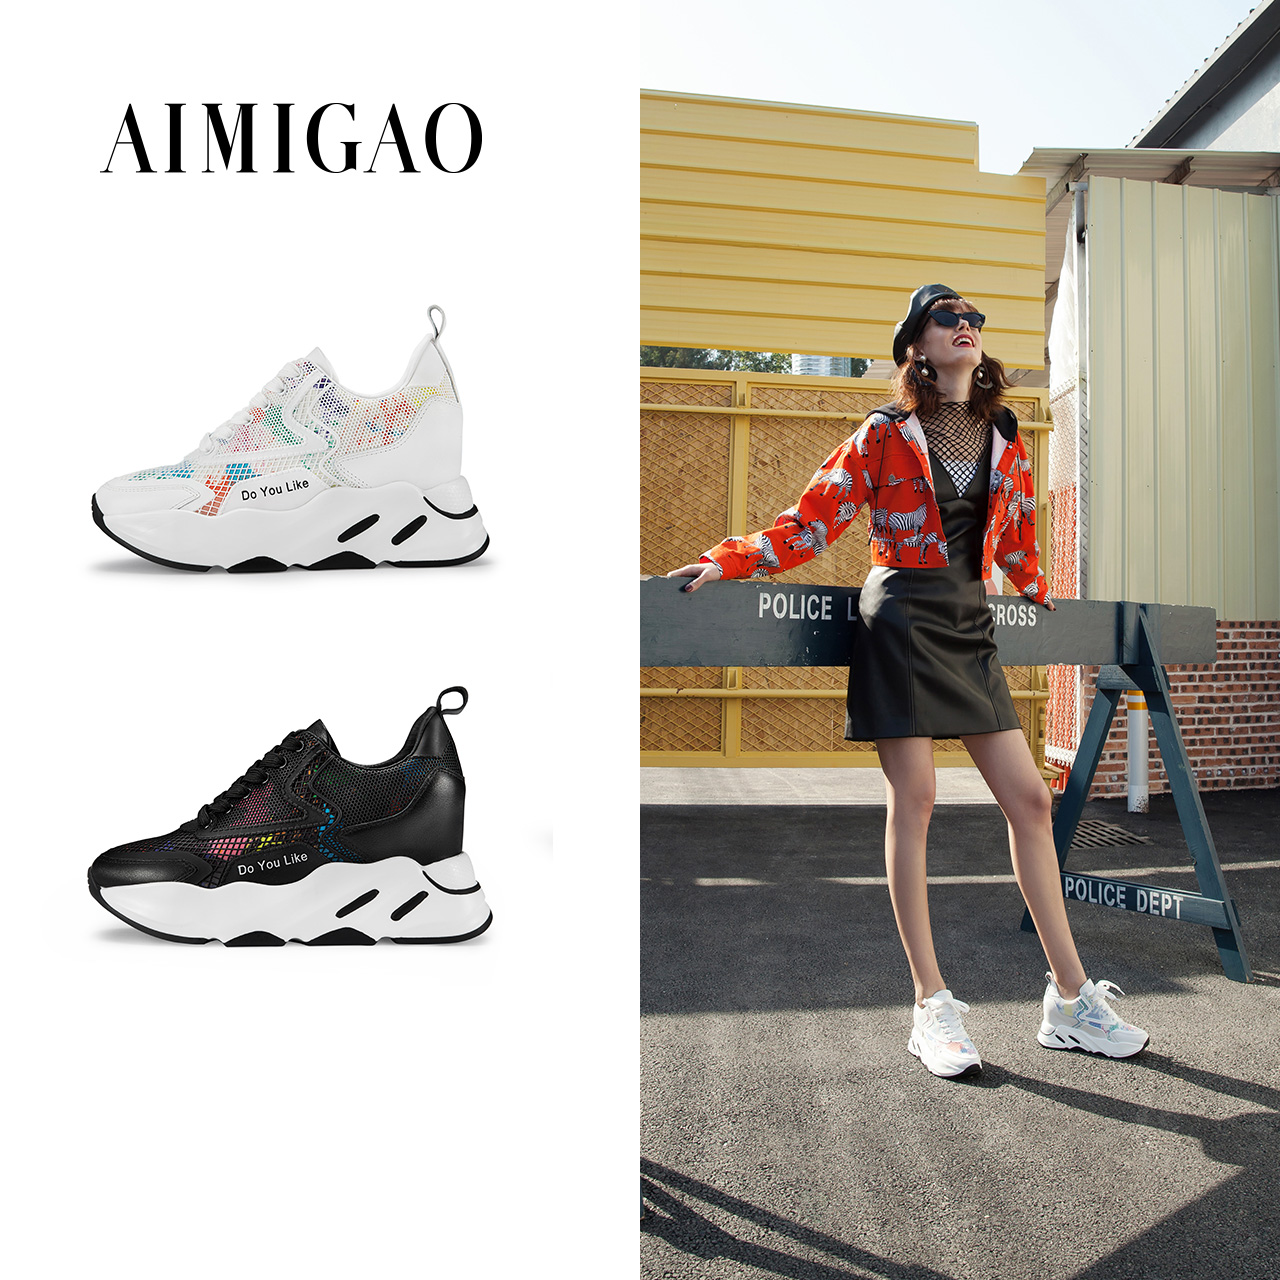 AIMIGAO Luxury Fashion Women Casual Lace-Up Sneakers Designers Flat Platform Comfortable Shoes Leather Women Casual Shoes 2018 minika new arrival 2017 casual shoes women multicolor optional comfortable women flat shoes fashion patchwork platform shoes